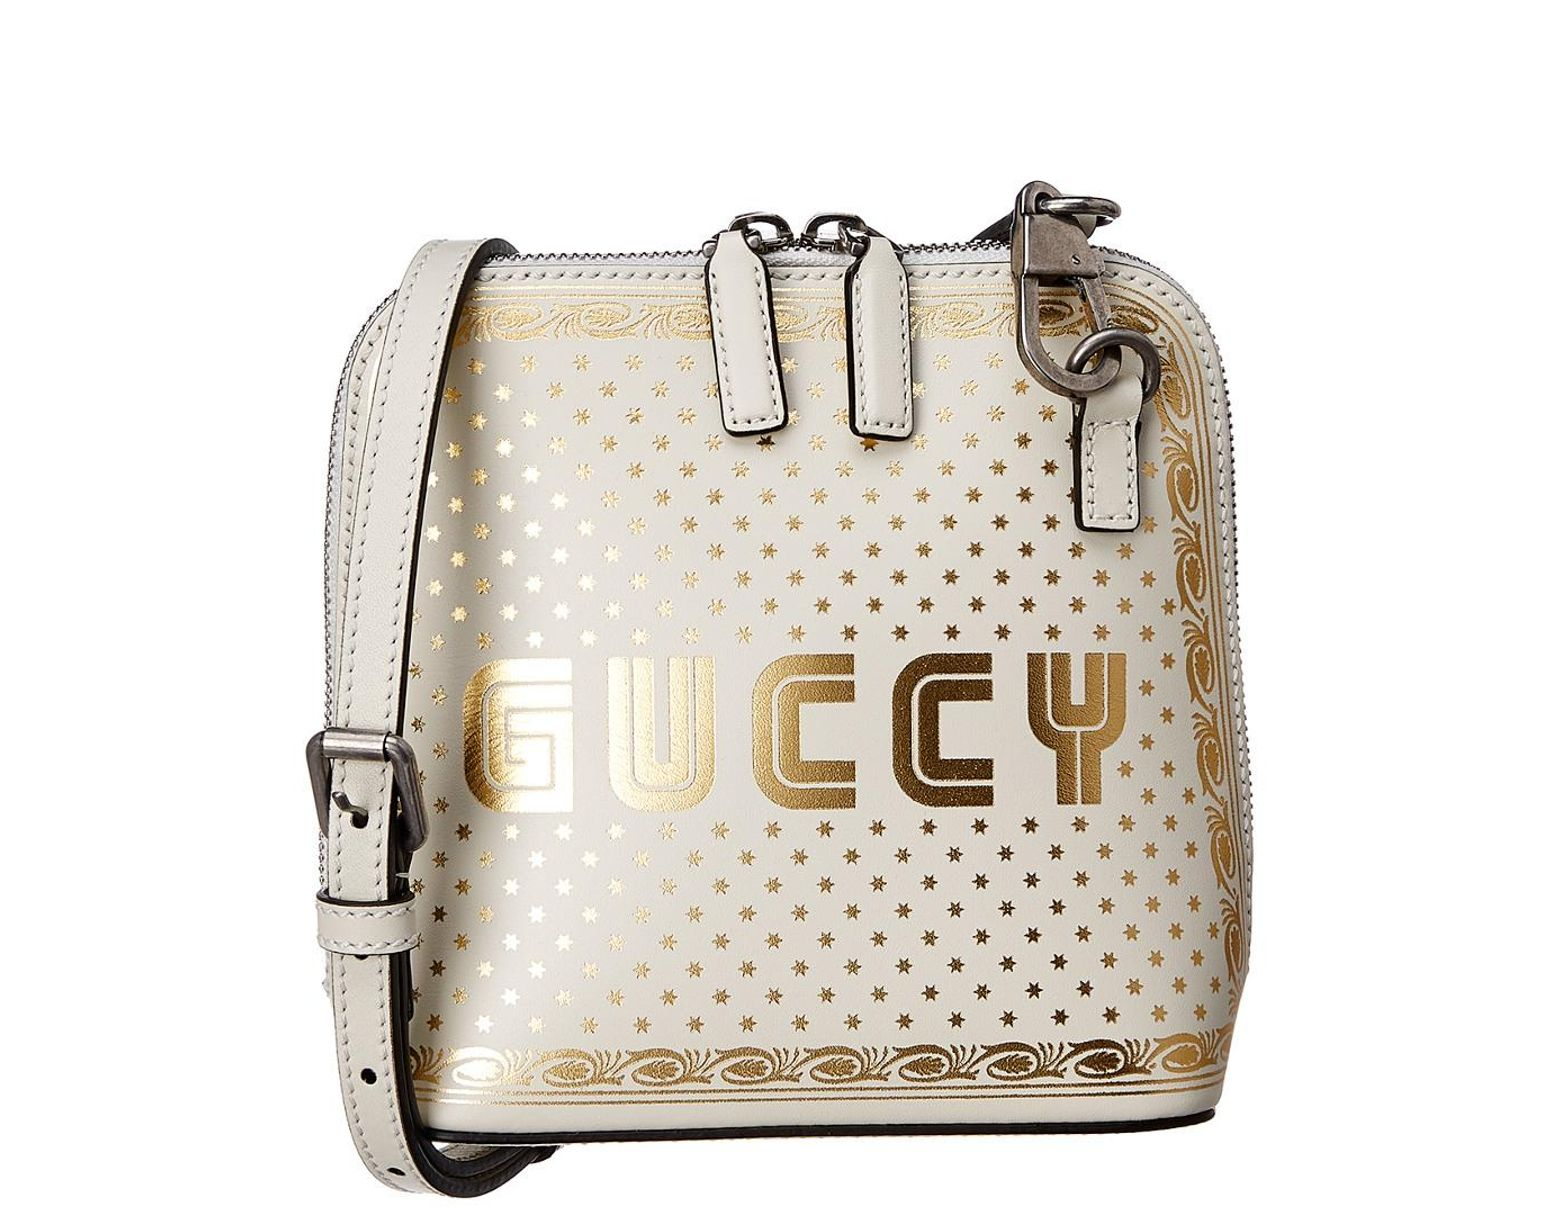 9922937e0d Gucci White Guccy Mini Leather Shoulder Bag in White - Save 51% - Lyst